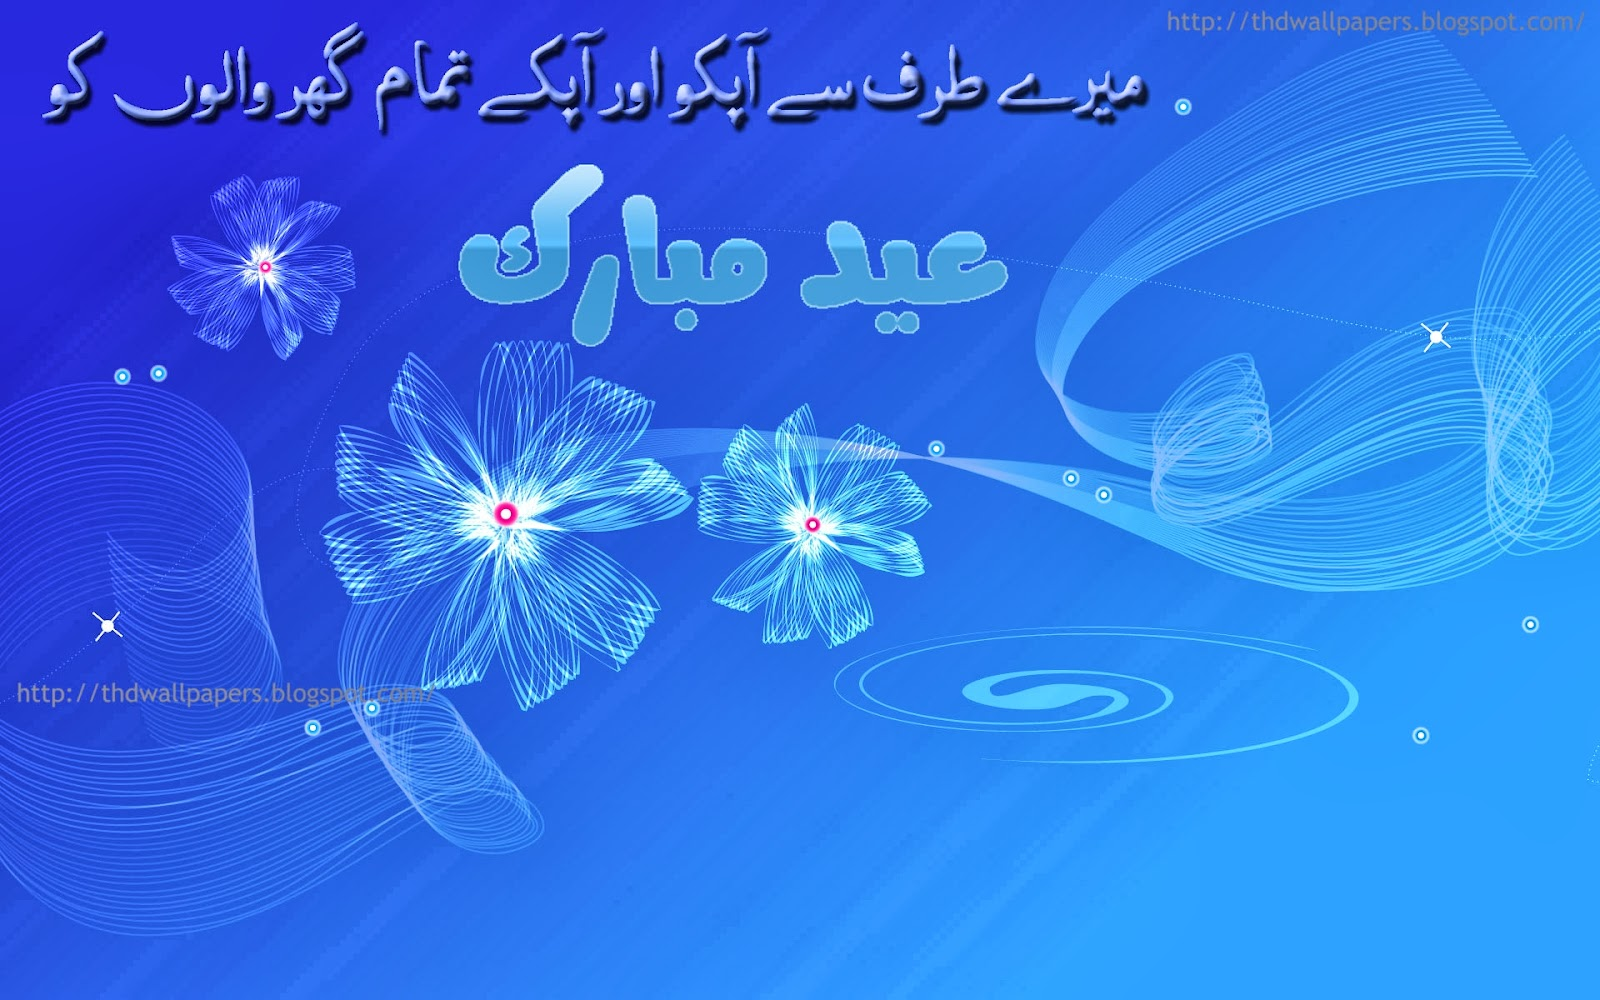 Stylish Eid ul Adha Mubarak Greeting eCards Wishes